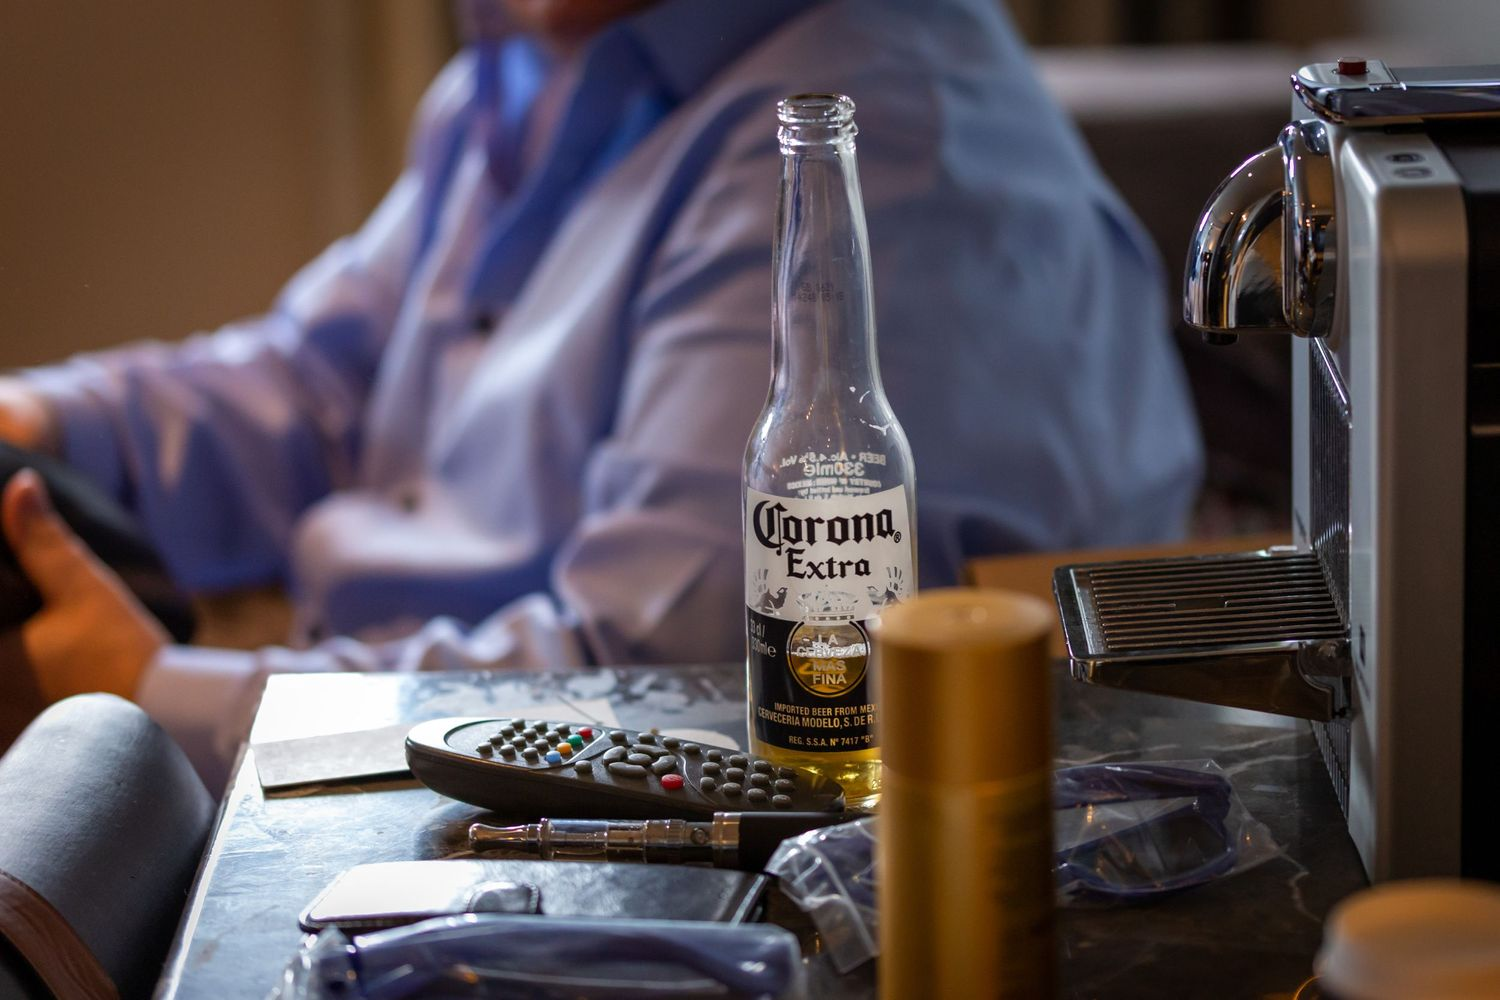 half empty bottle of corona larger on the side table during the groom prep at the vincent hotel southport covid wedding